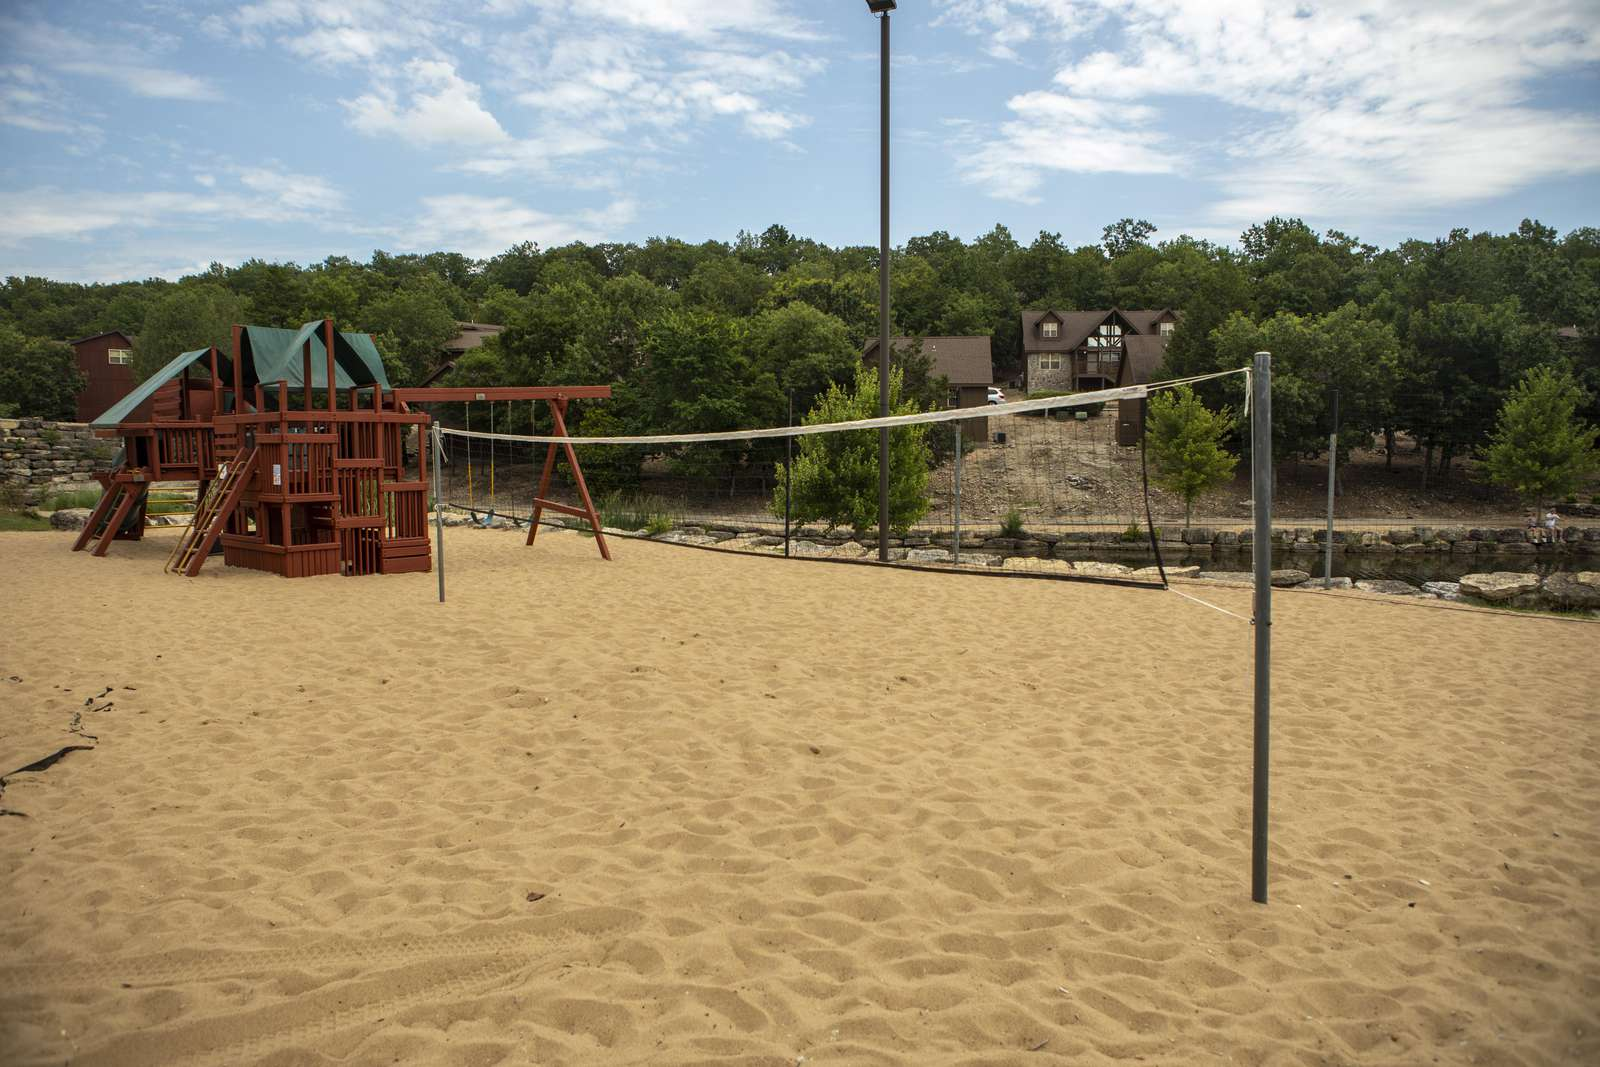 Sand volleyball and playground at Fox Hollow in Stonebridge.